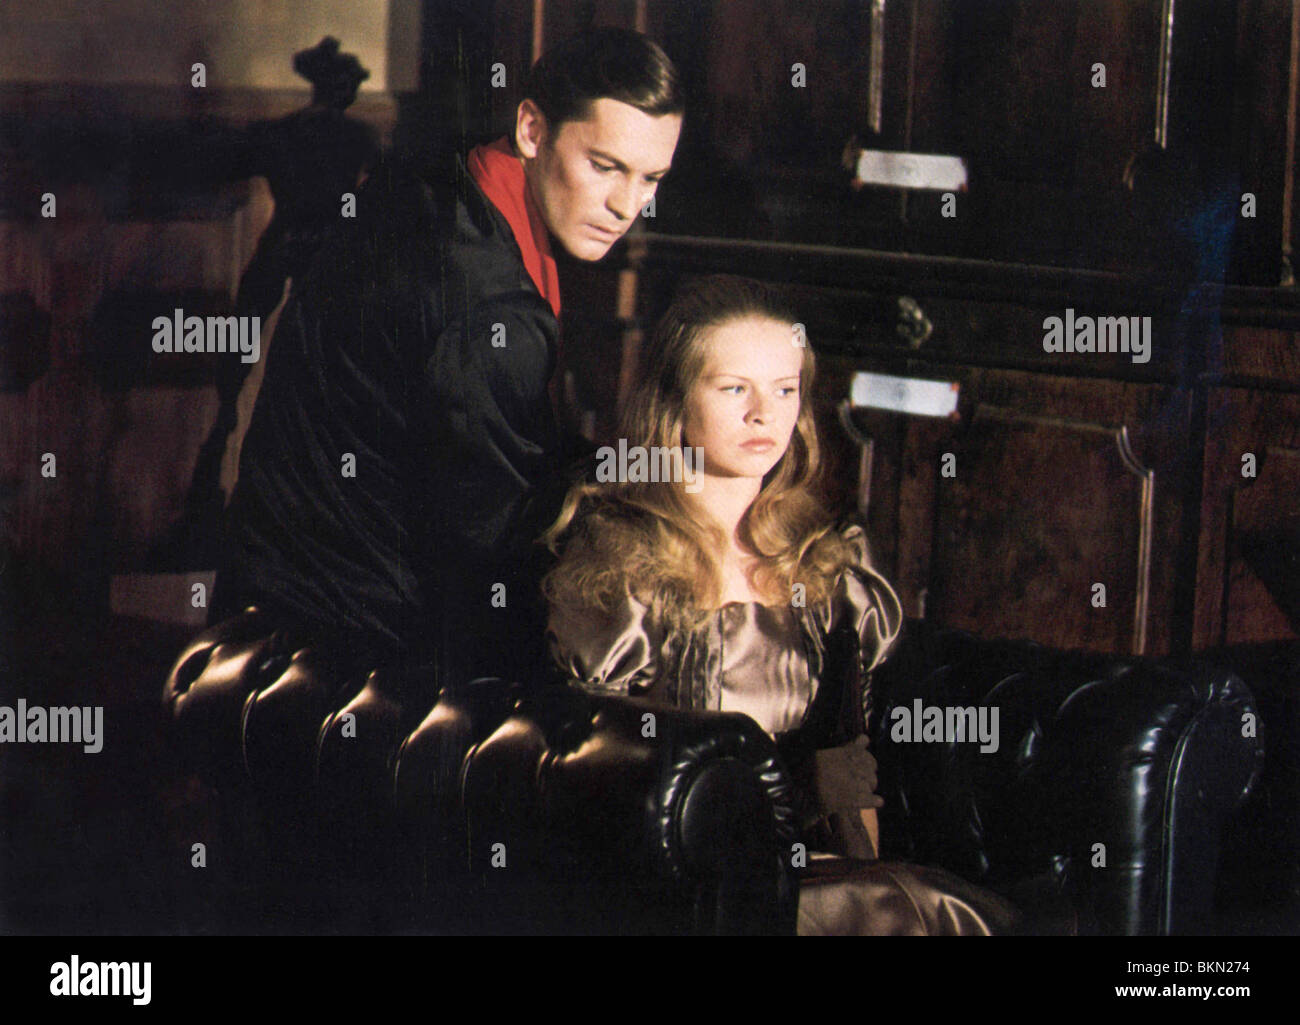 SALON KITTY (1978) HELMUT BERGER, TERESA ANN SAVOY SNKT ...